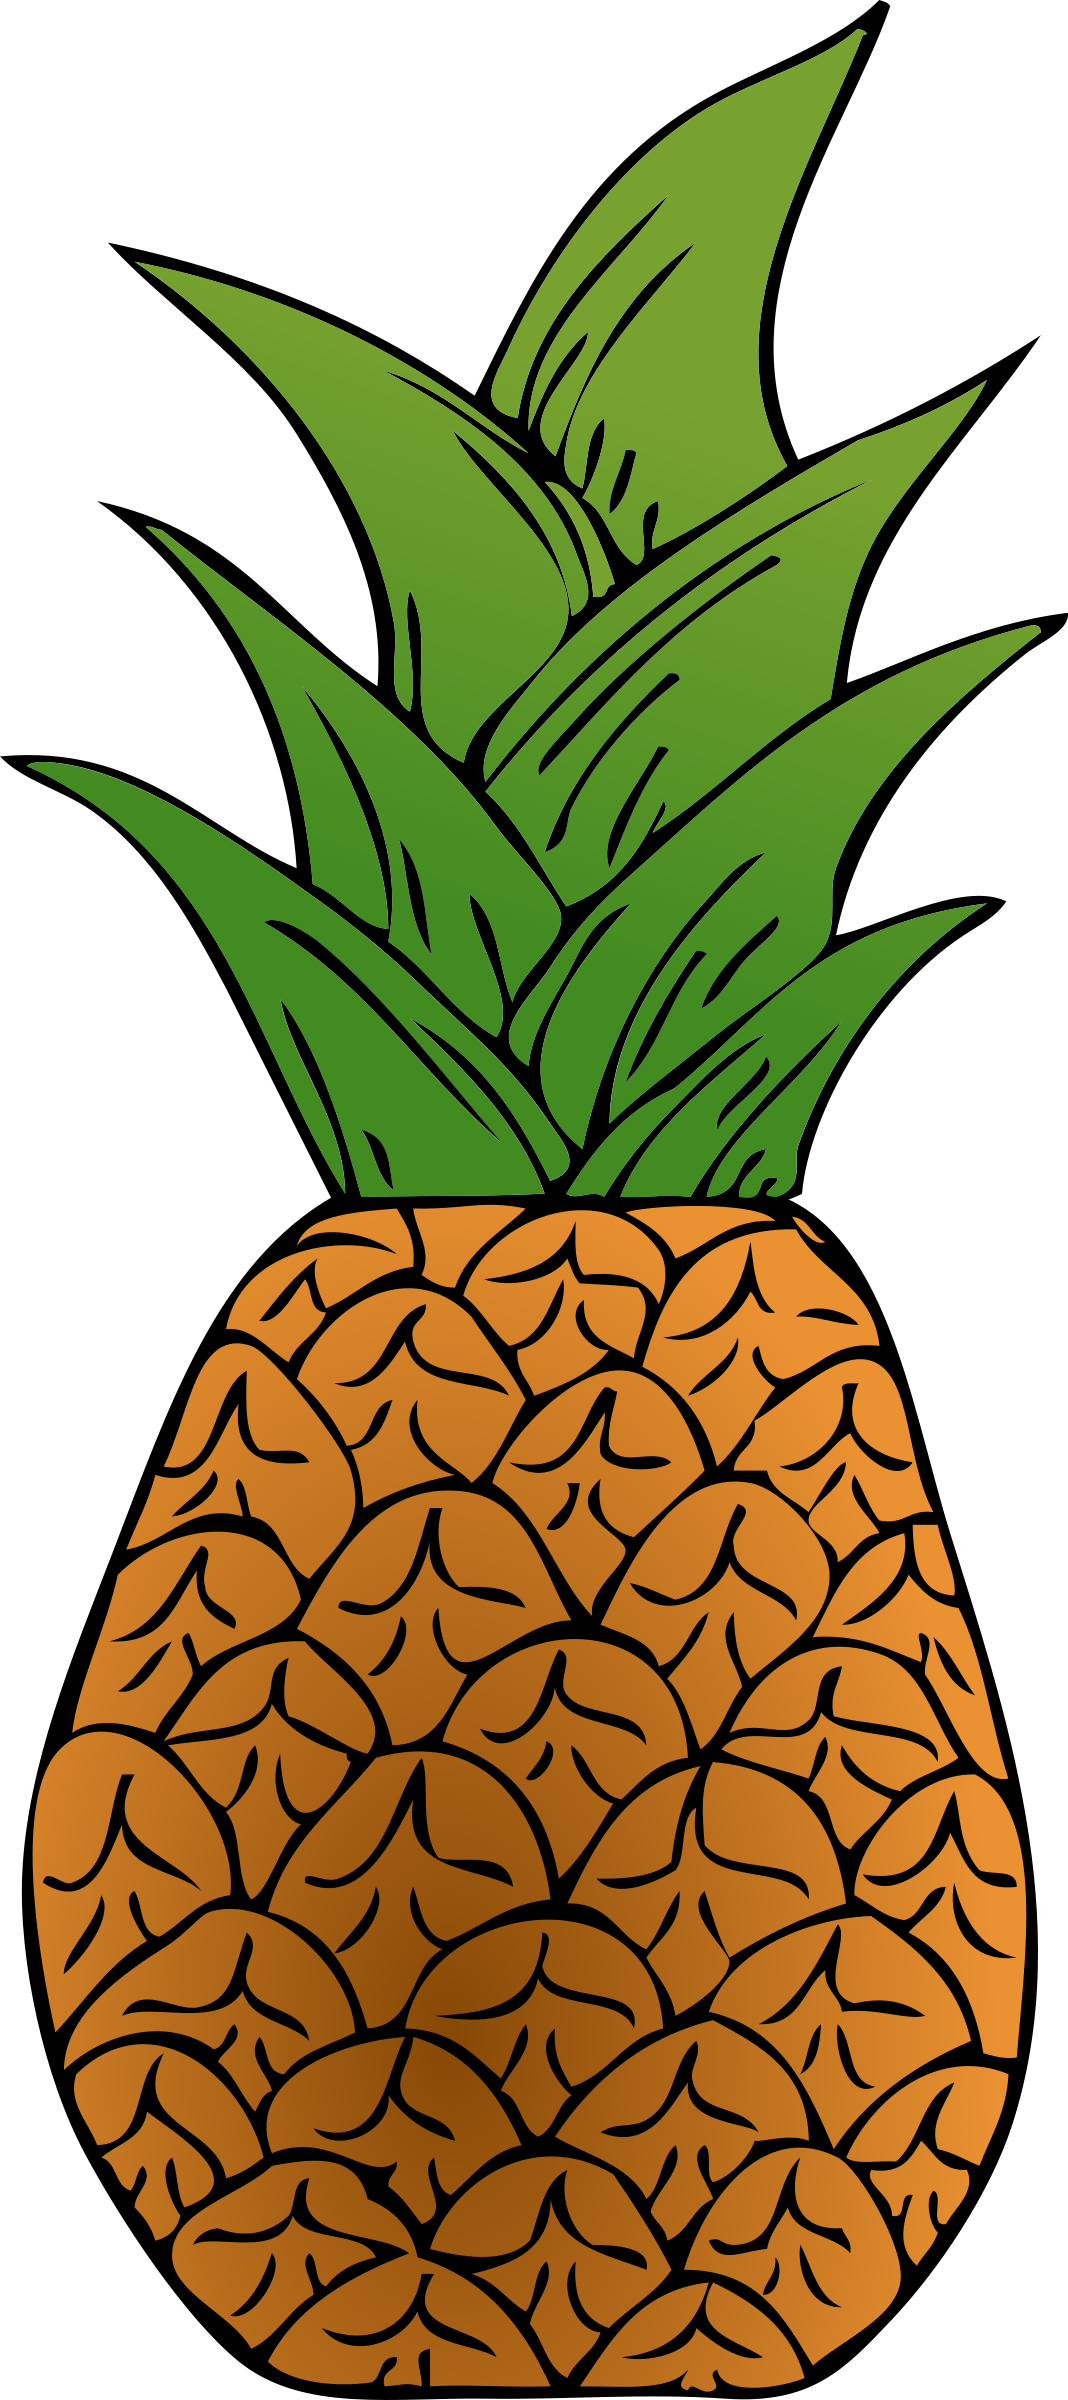 Pineapple clipart pdf. Alternative big image png